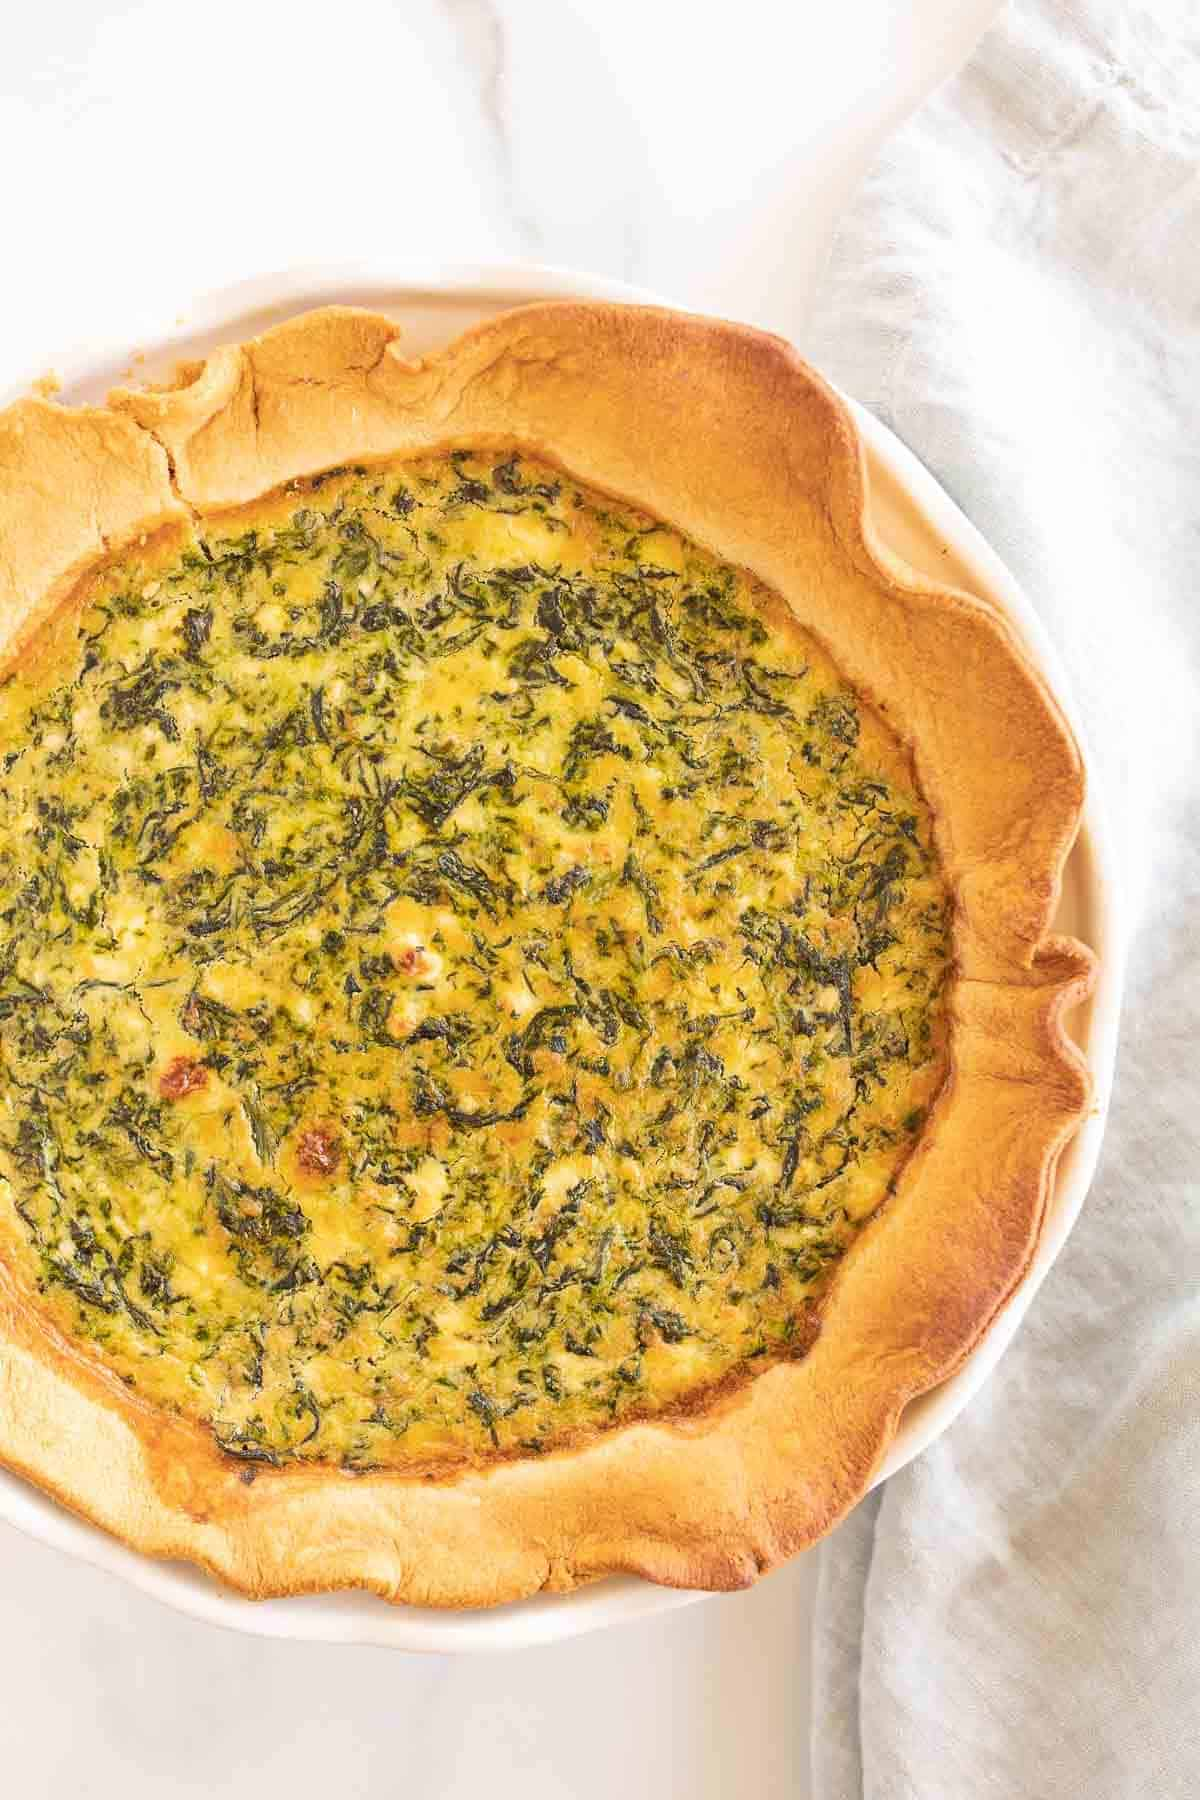 A spinach and feta quiche on a white surface.